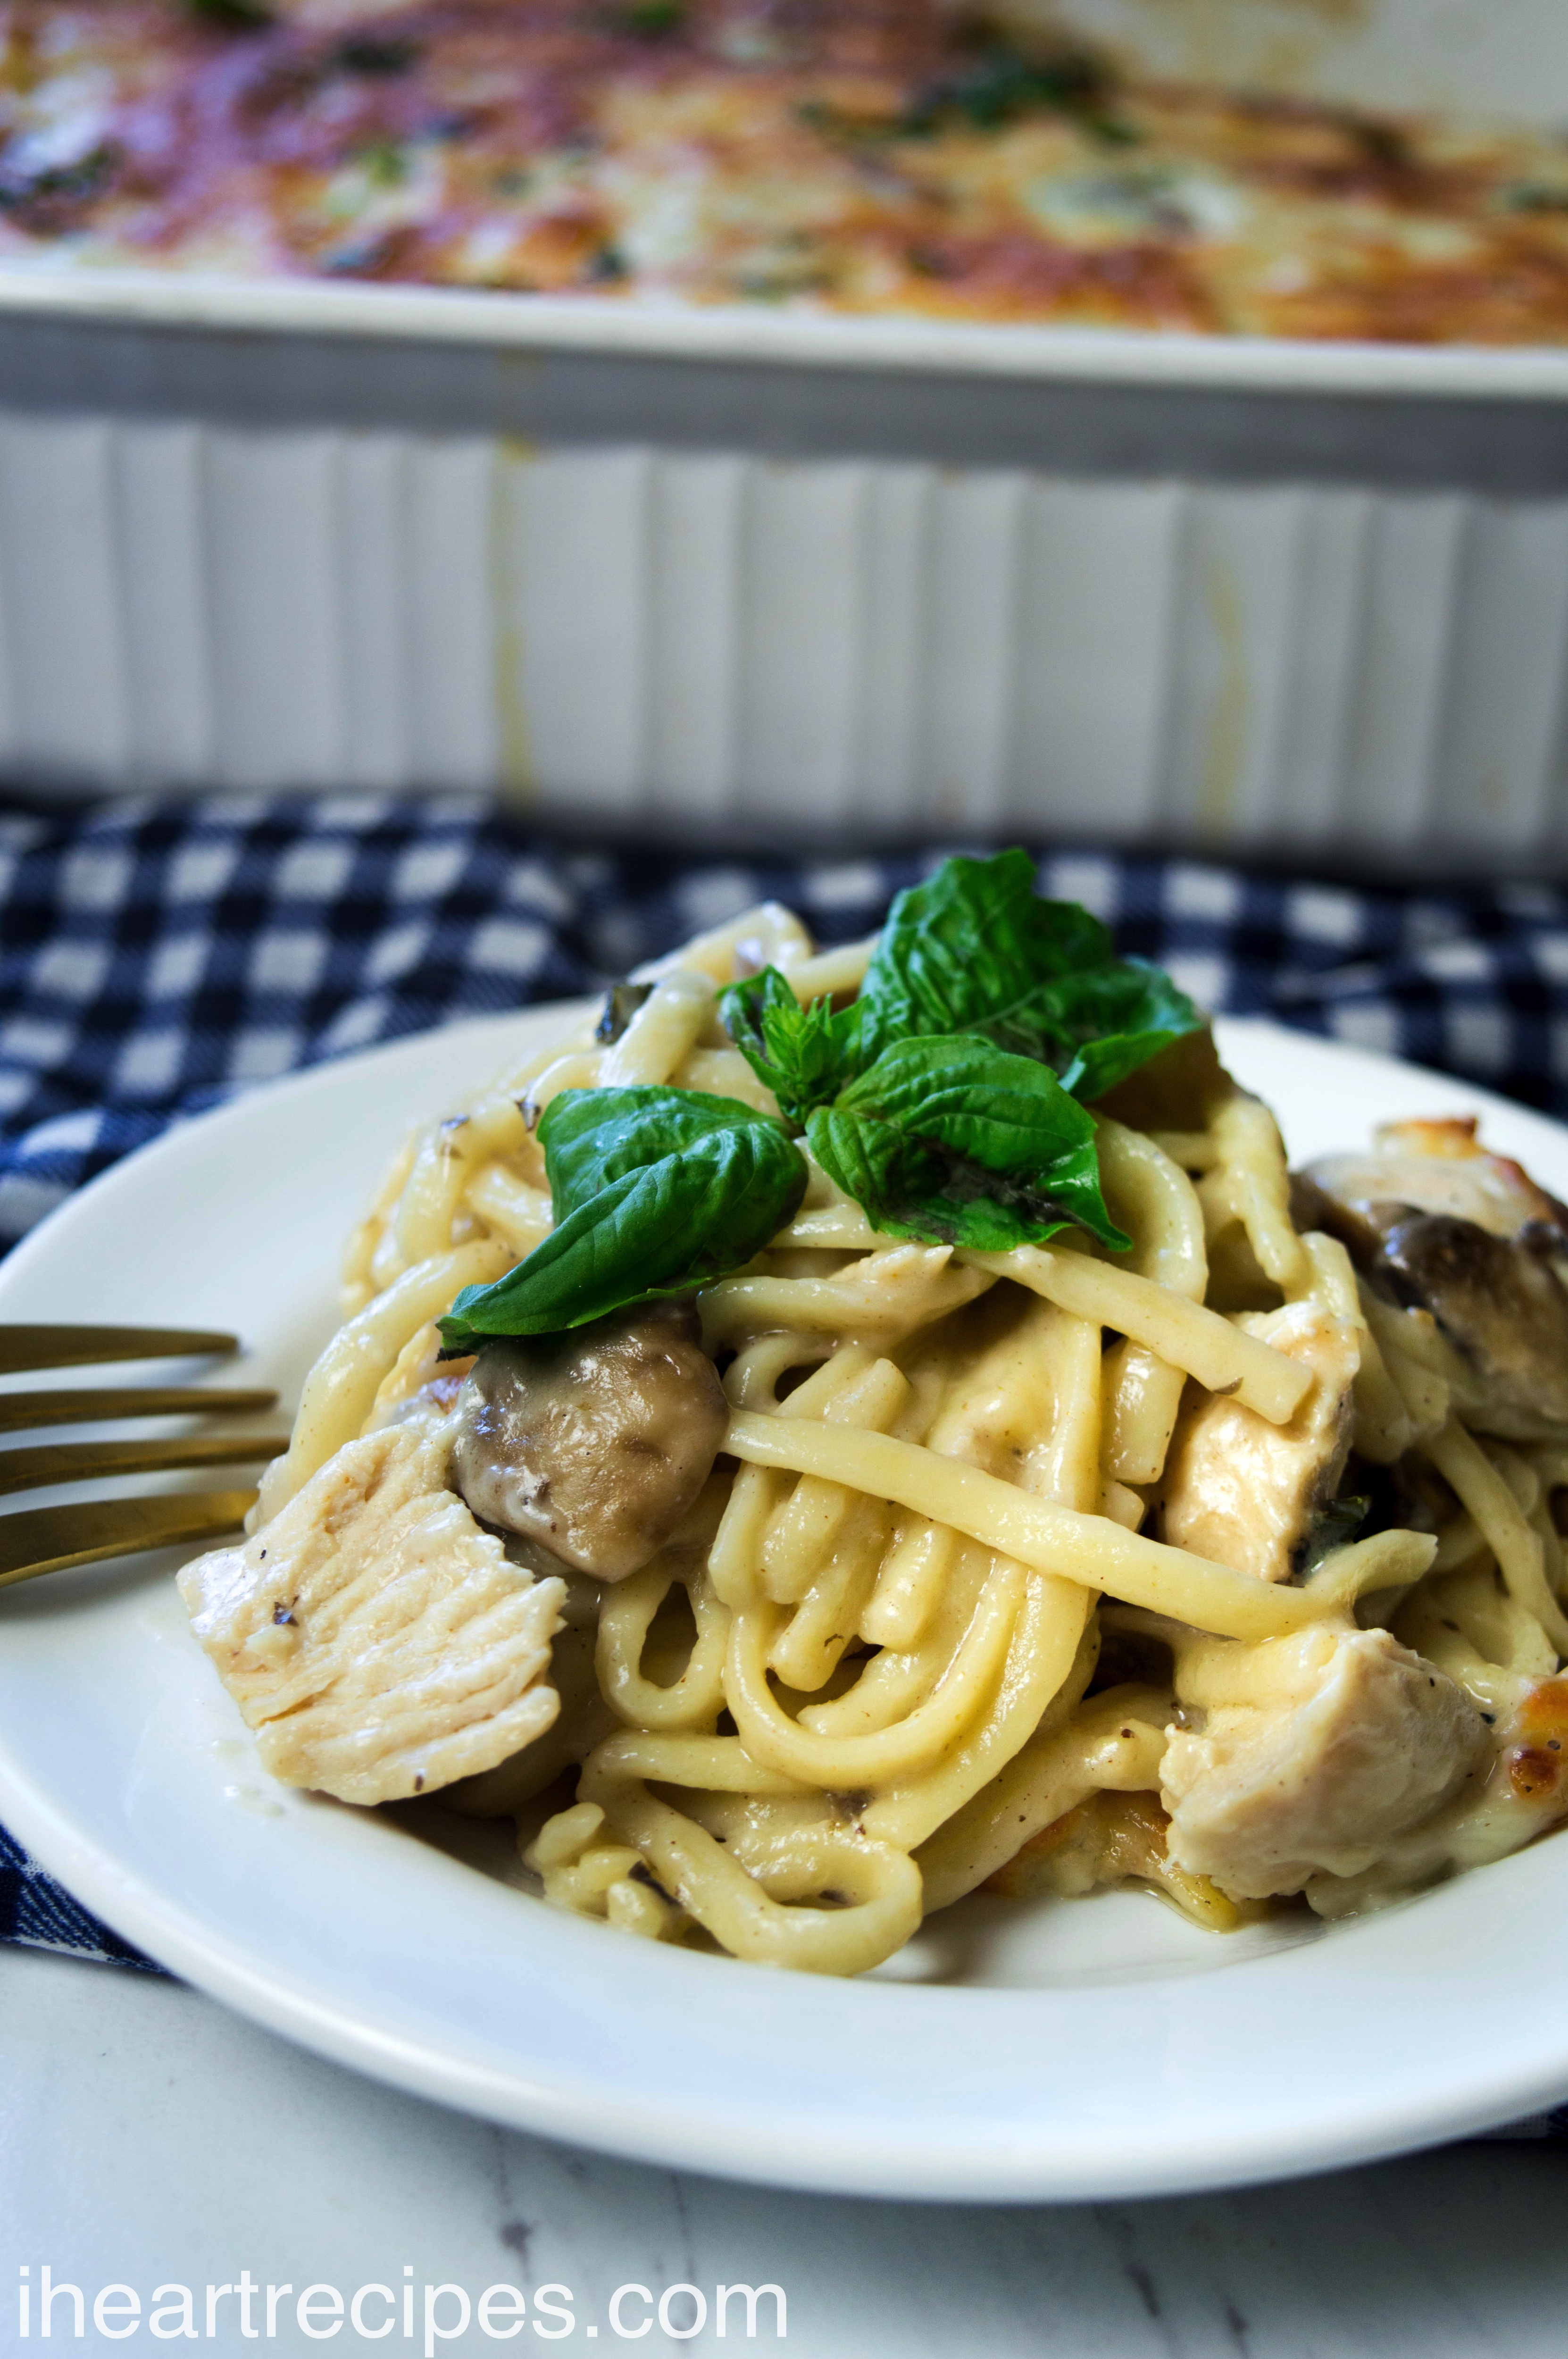 This creamy chicken tetrazzini can be made with leftover chicken to cut down on cooking time.